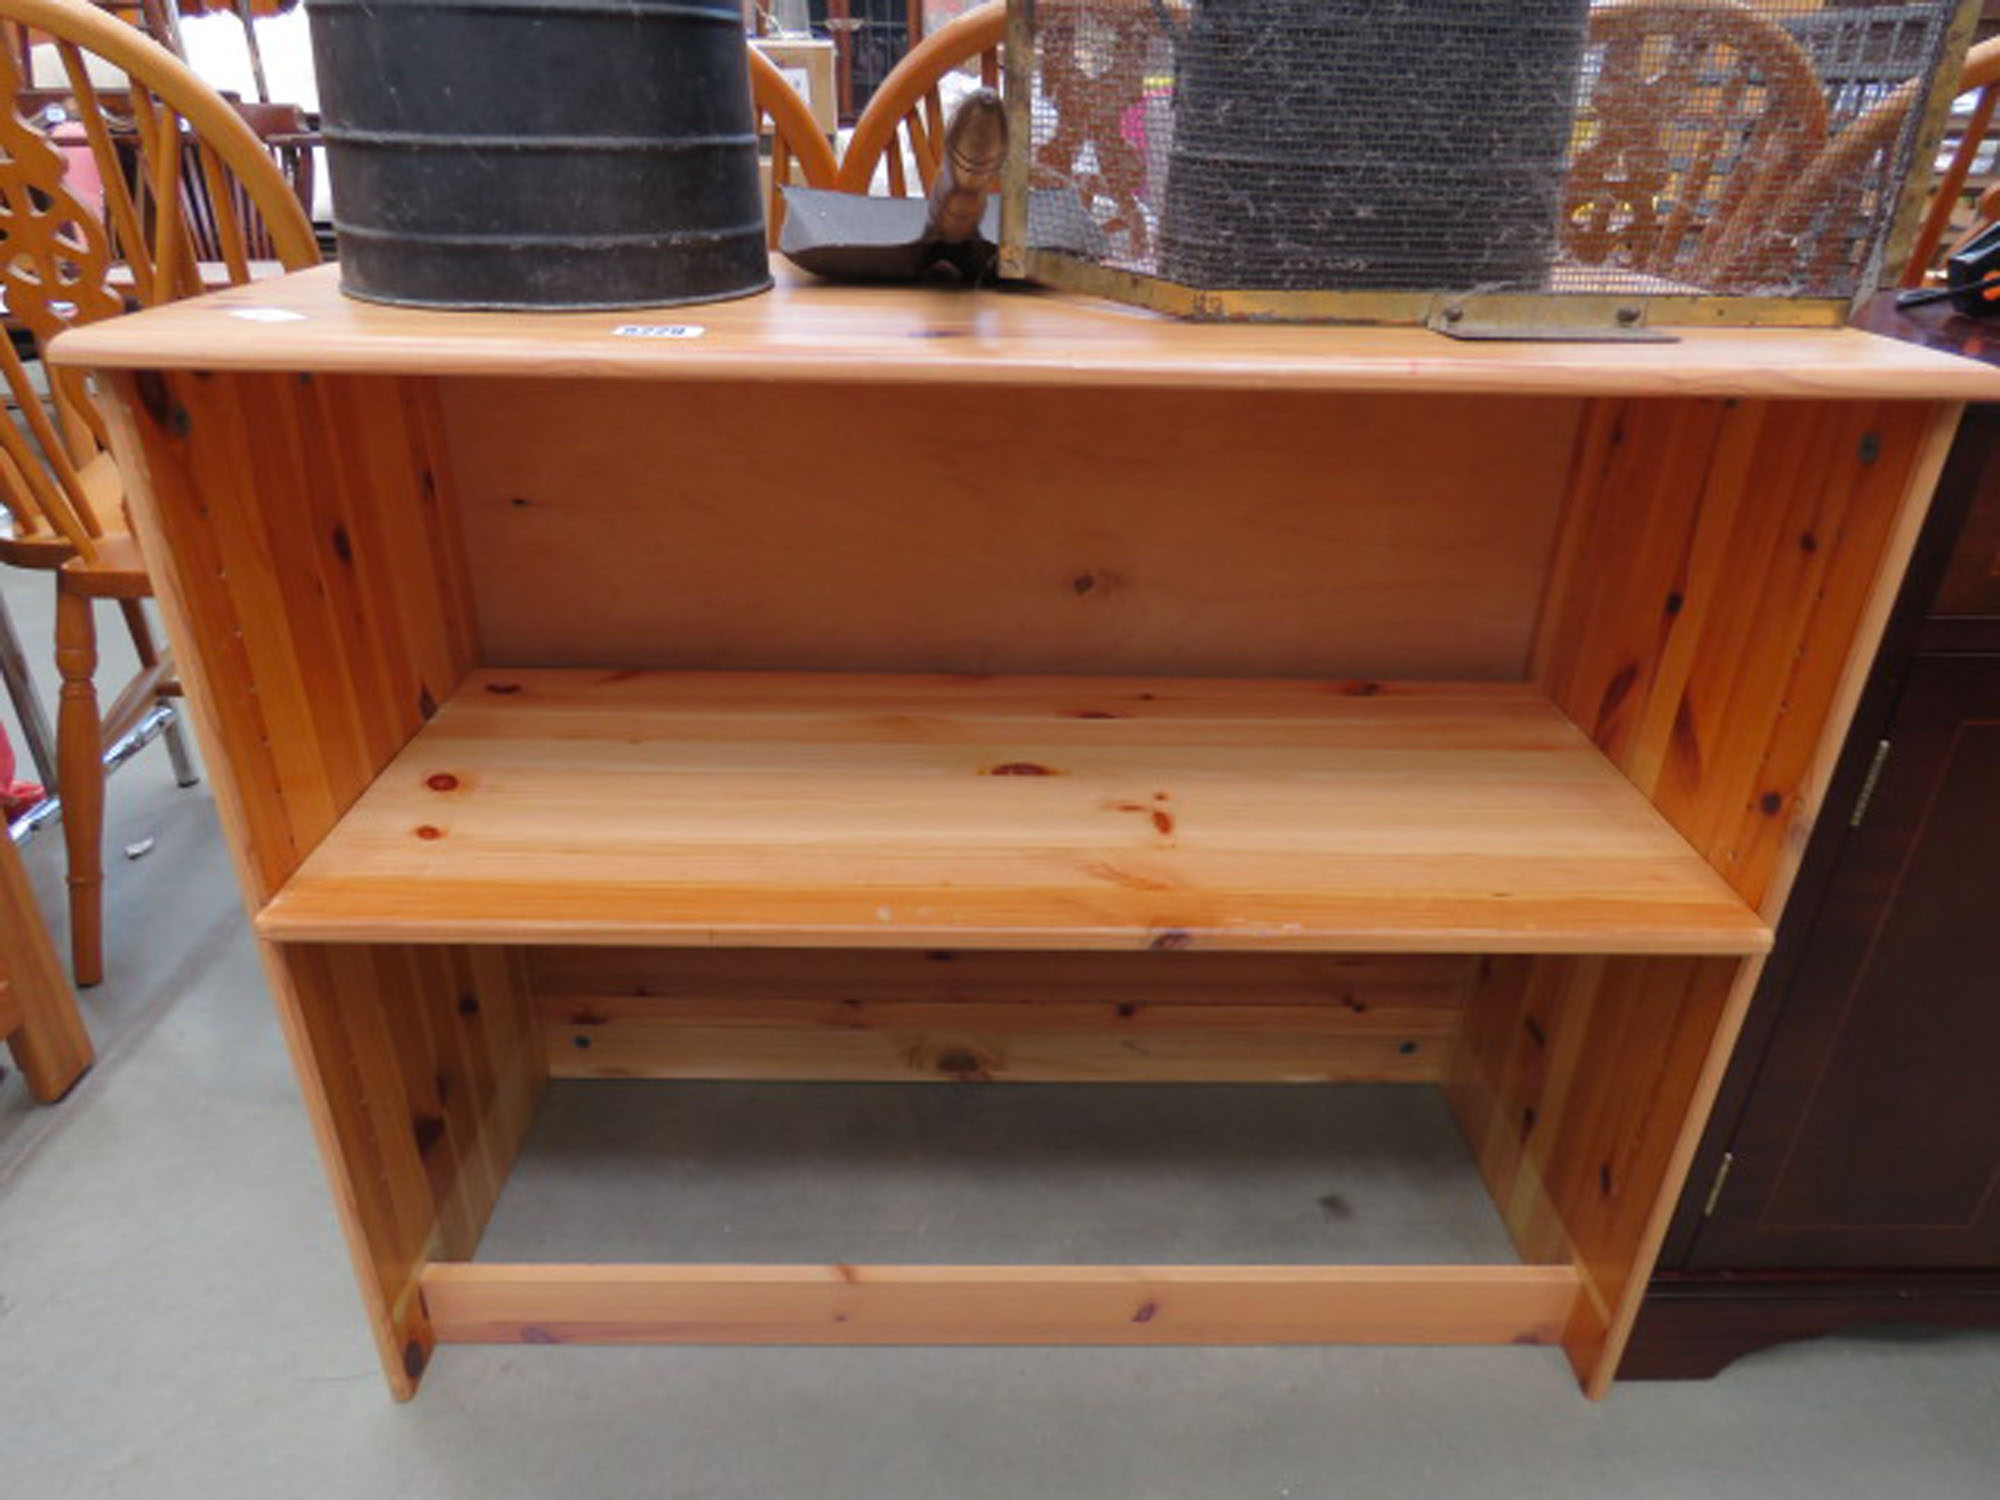 Pine open-fronted bookcase